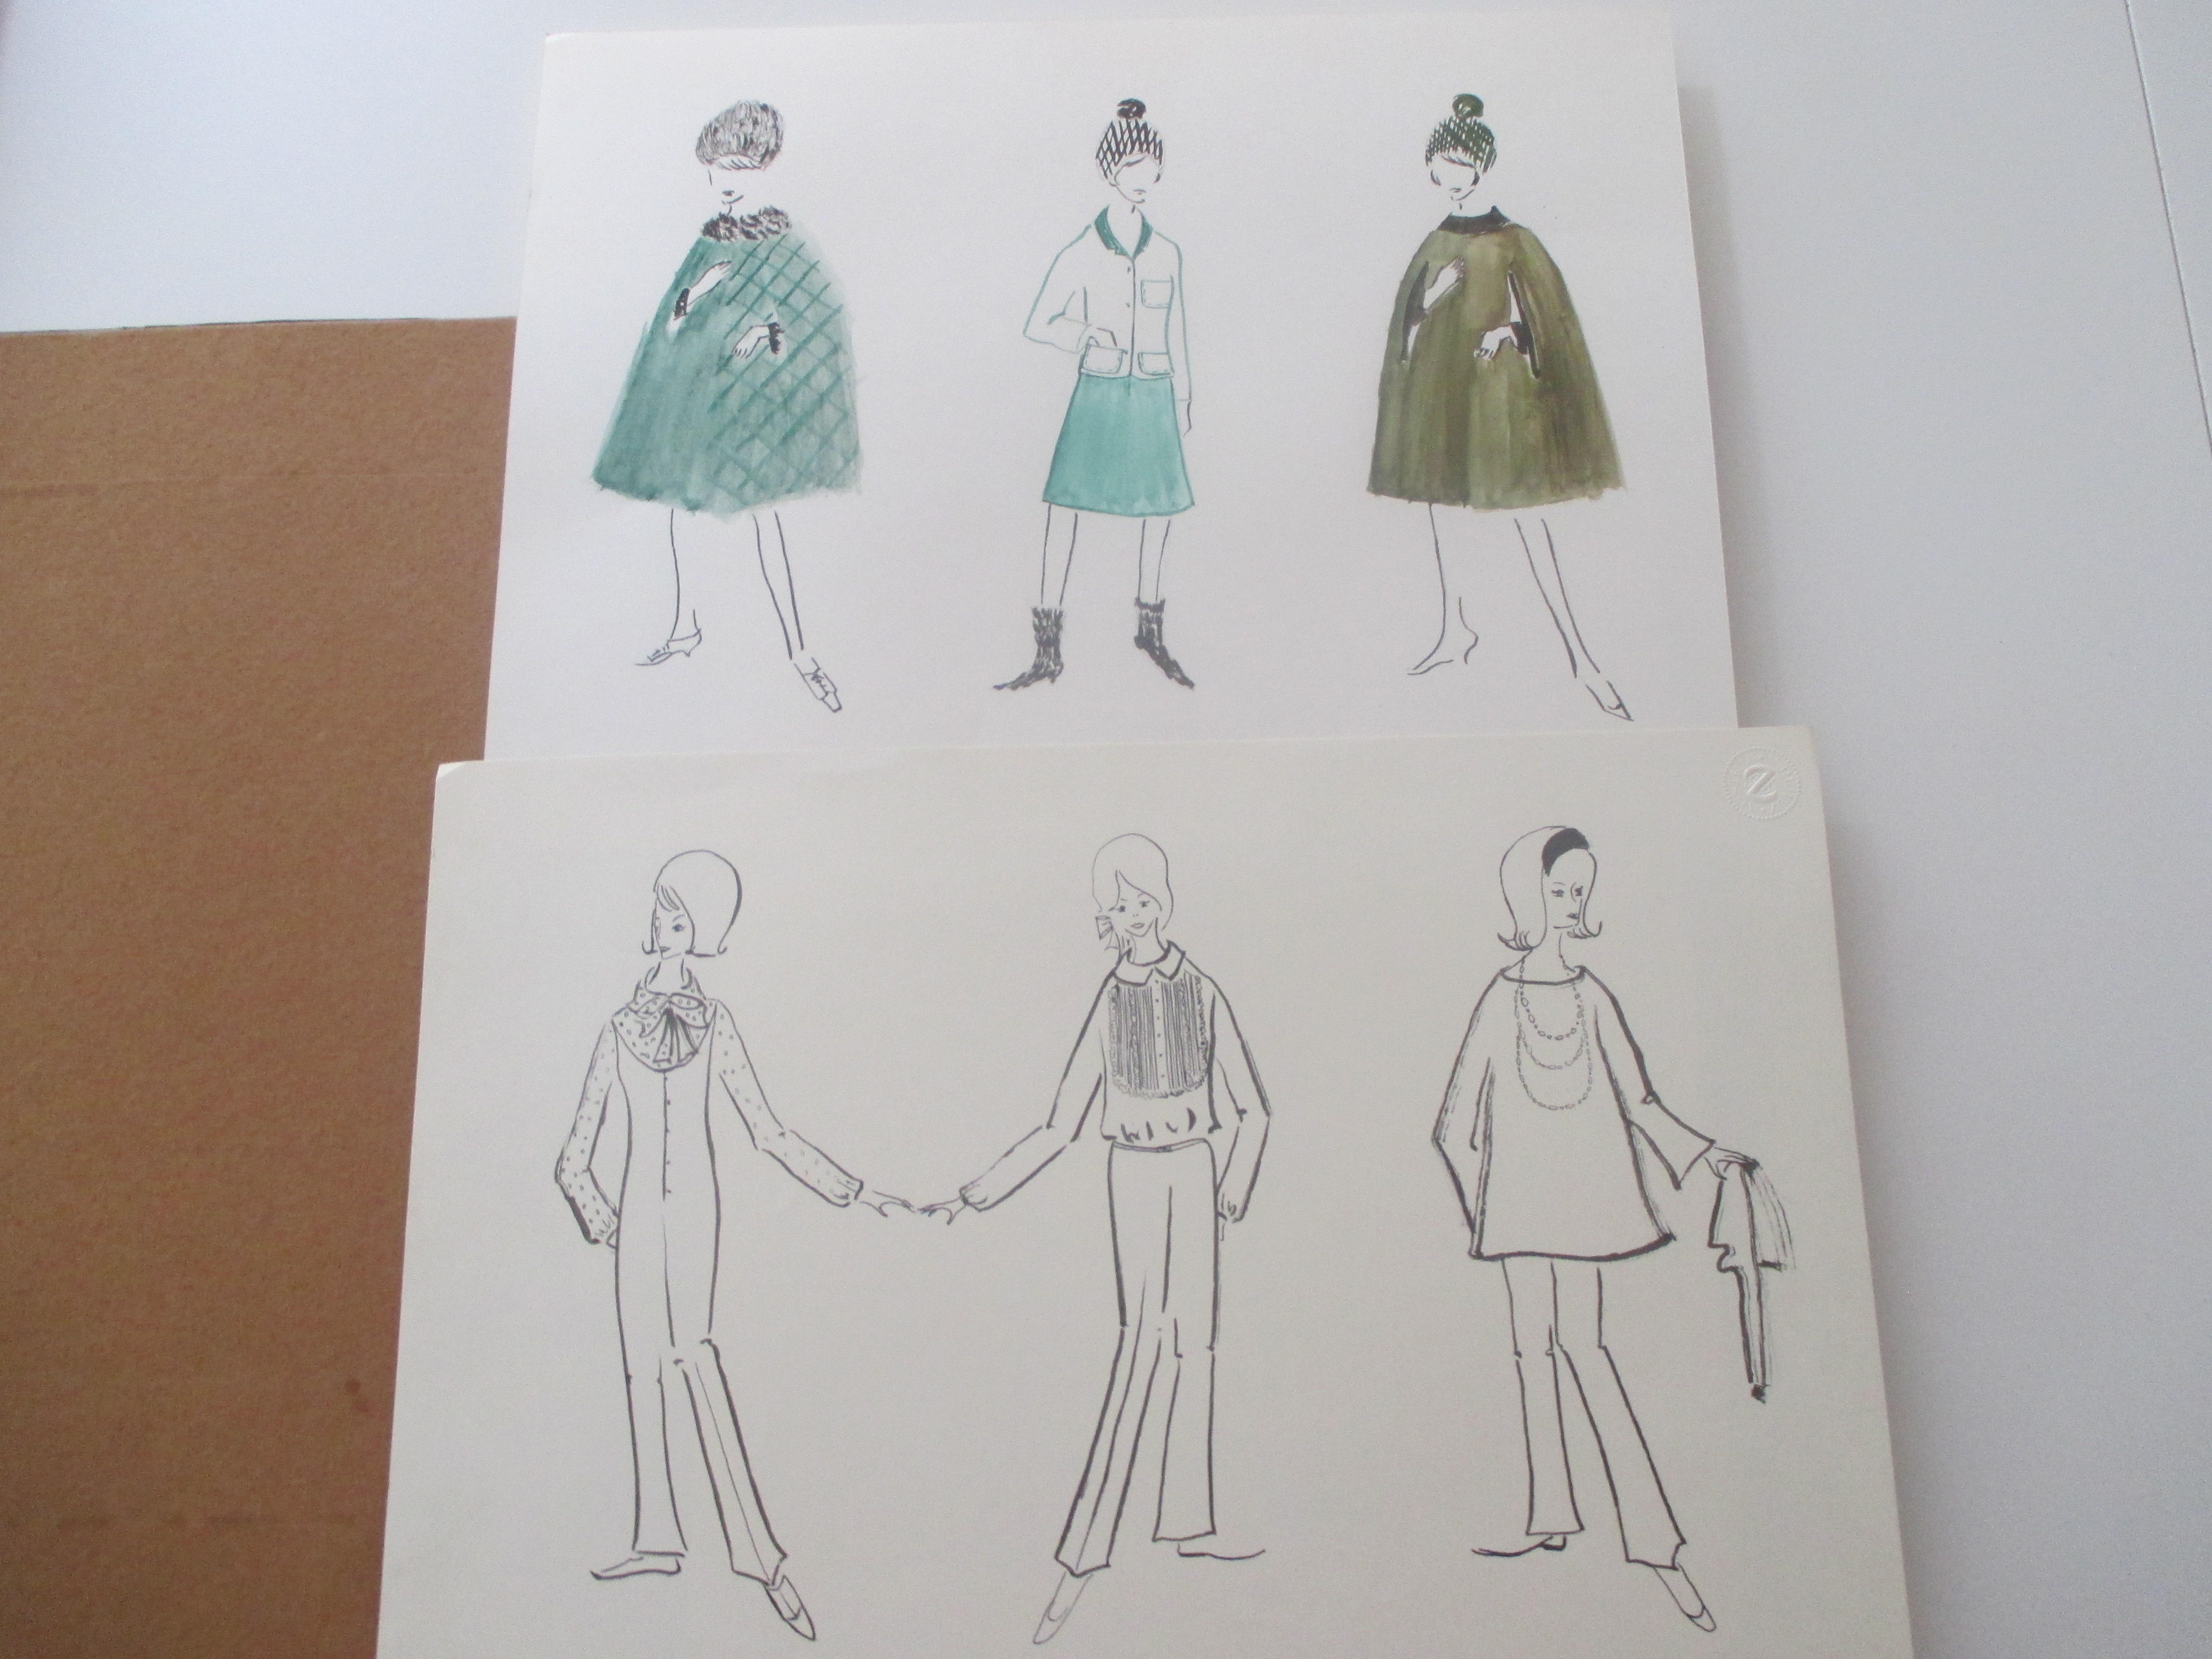 Collection of designs for woman fashion. Fashion - Bergo, G. 42 : 30 cm. 27 plates with many designs, partly in colour. Shows also designs for smaller, tallor and dicker woman. 2 plates with many designs for eve